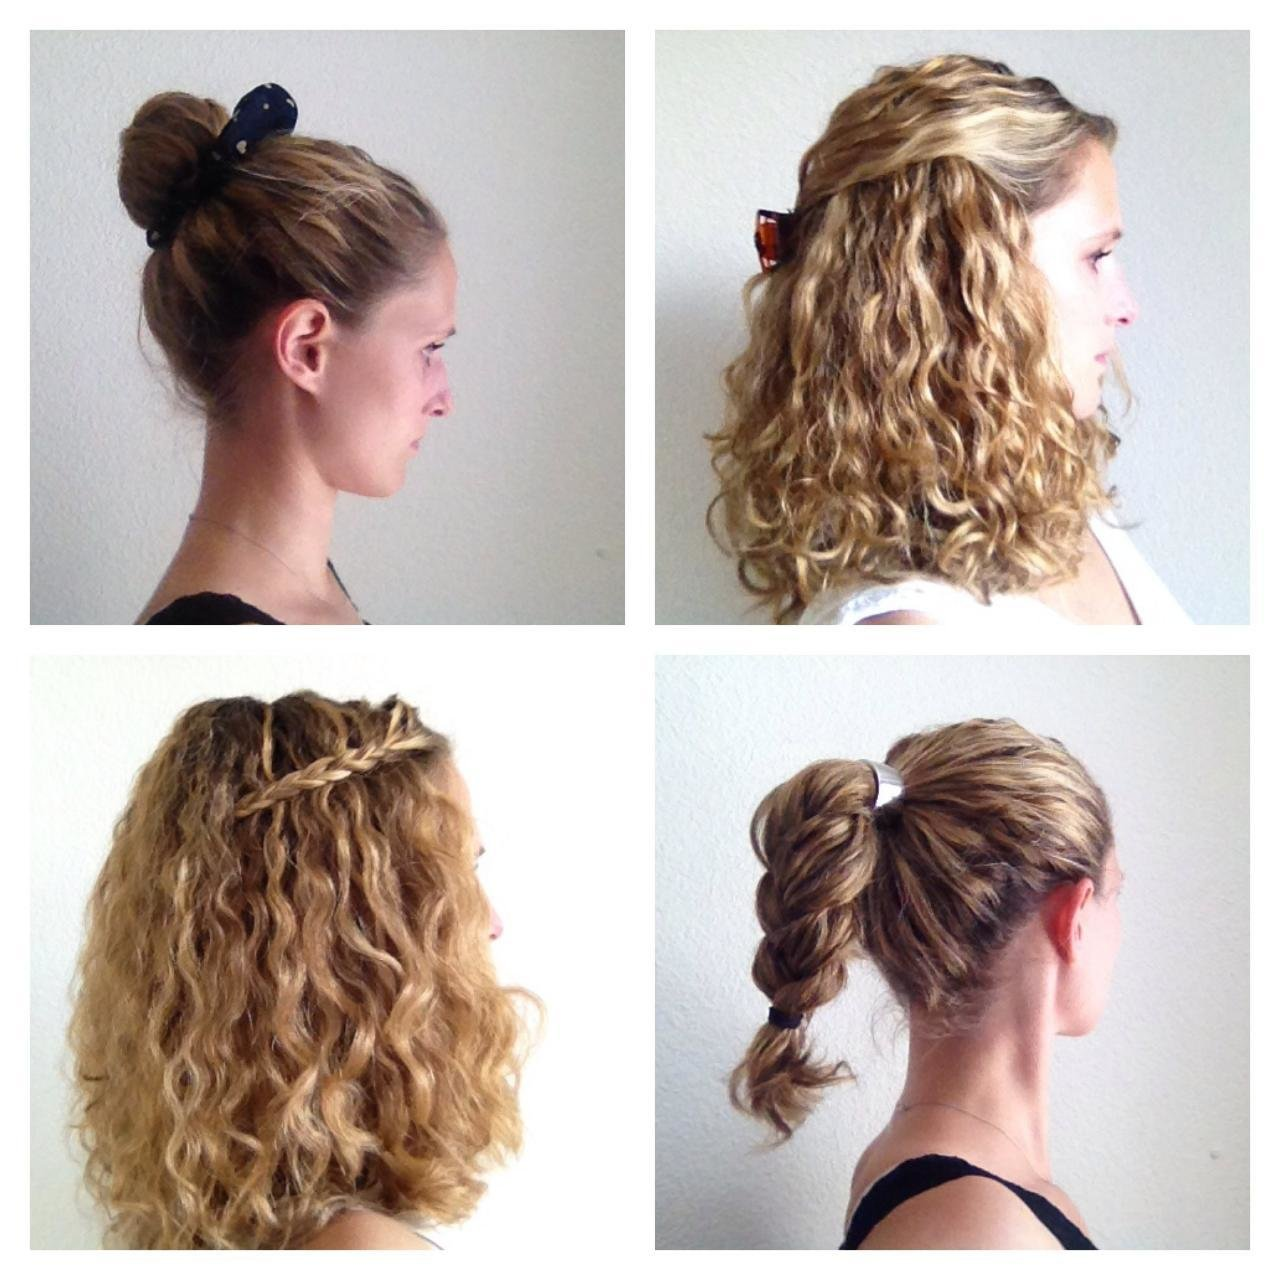 The Best Diy Easy Simple Hairstyles Without Heat Pictures